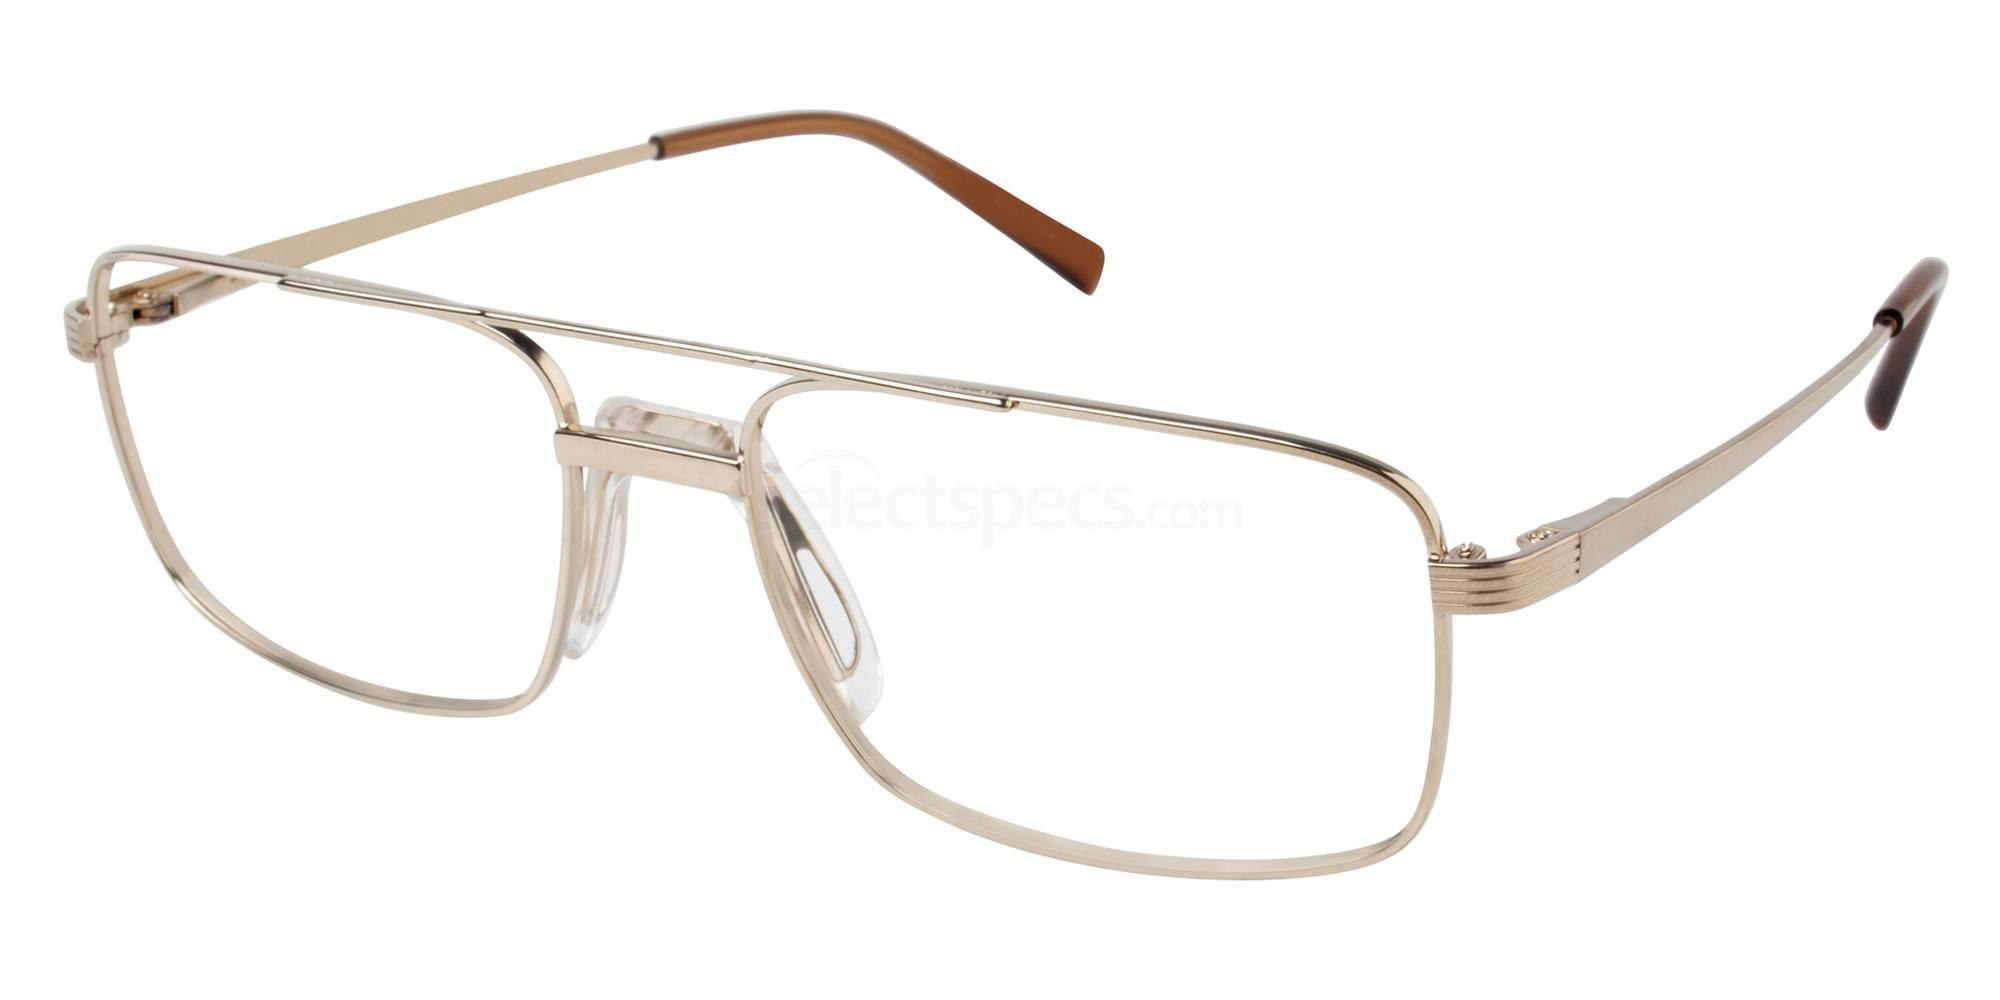 Charmant CH11424 glasses